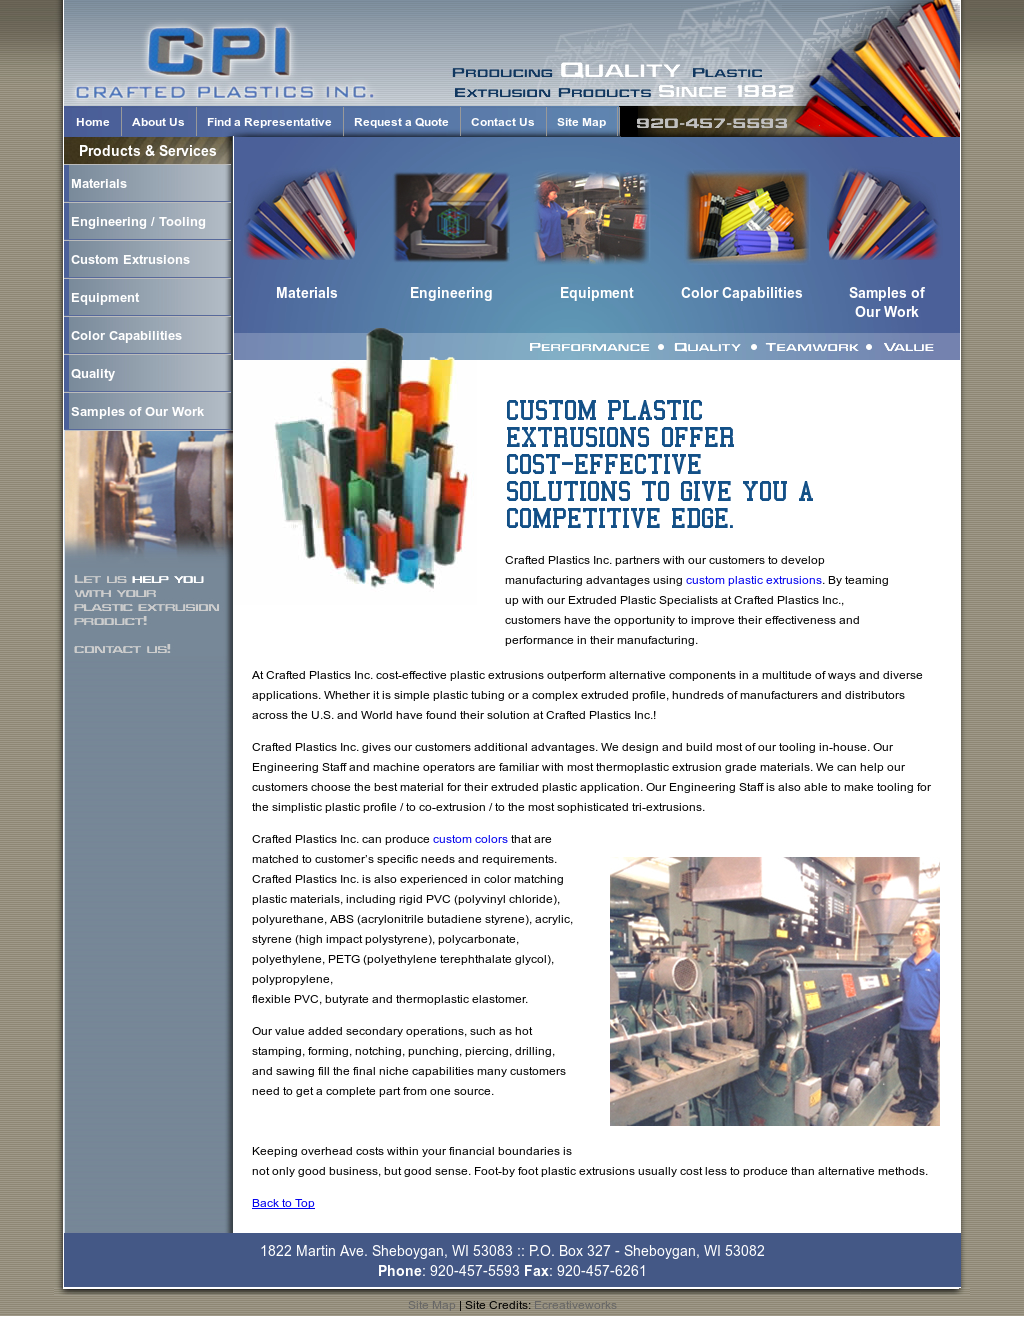 Crafted Plastics Competitors, Revenue and Employees - Owler Company